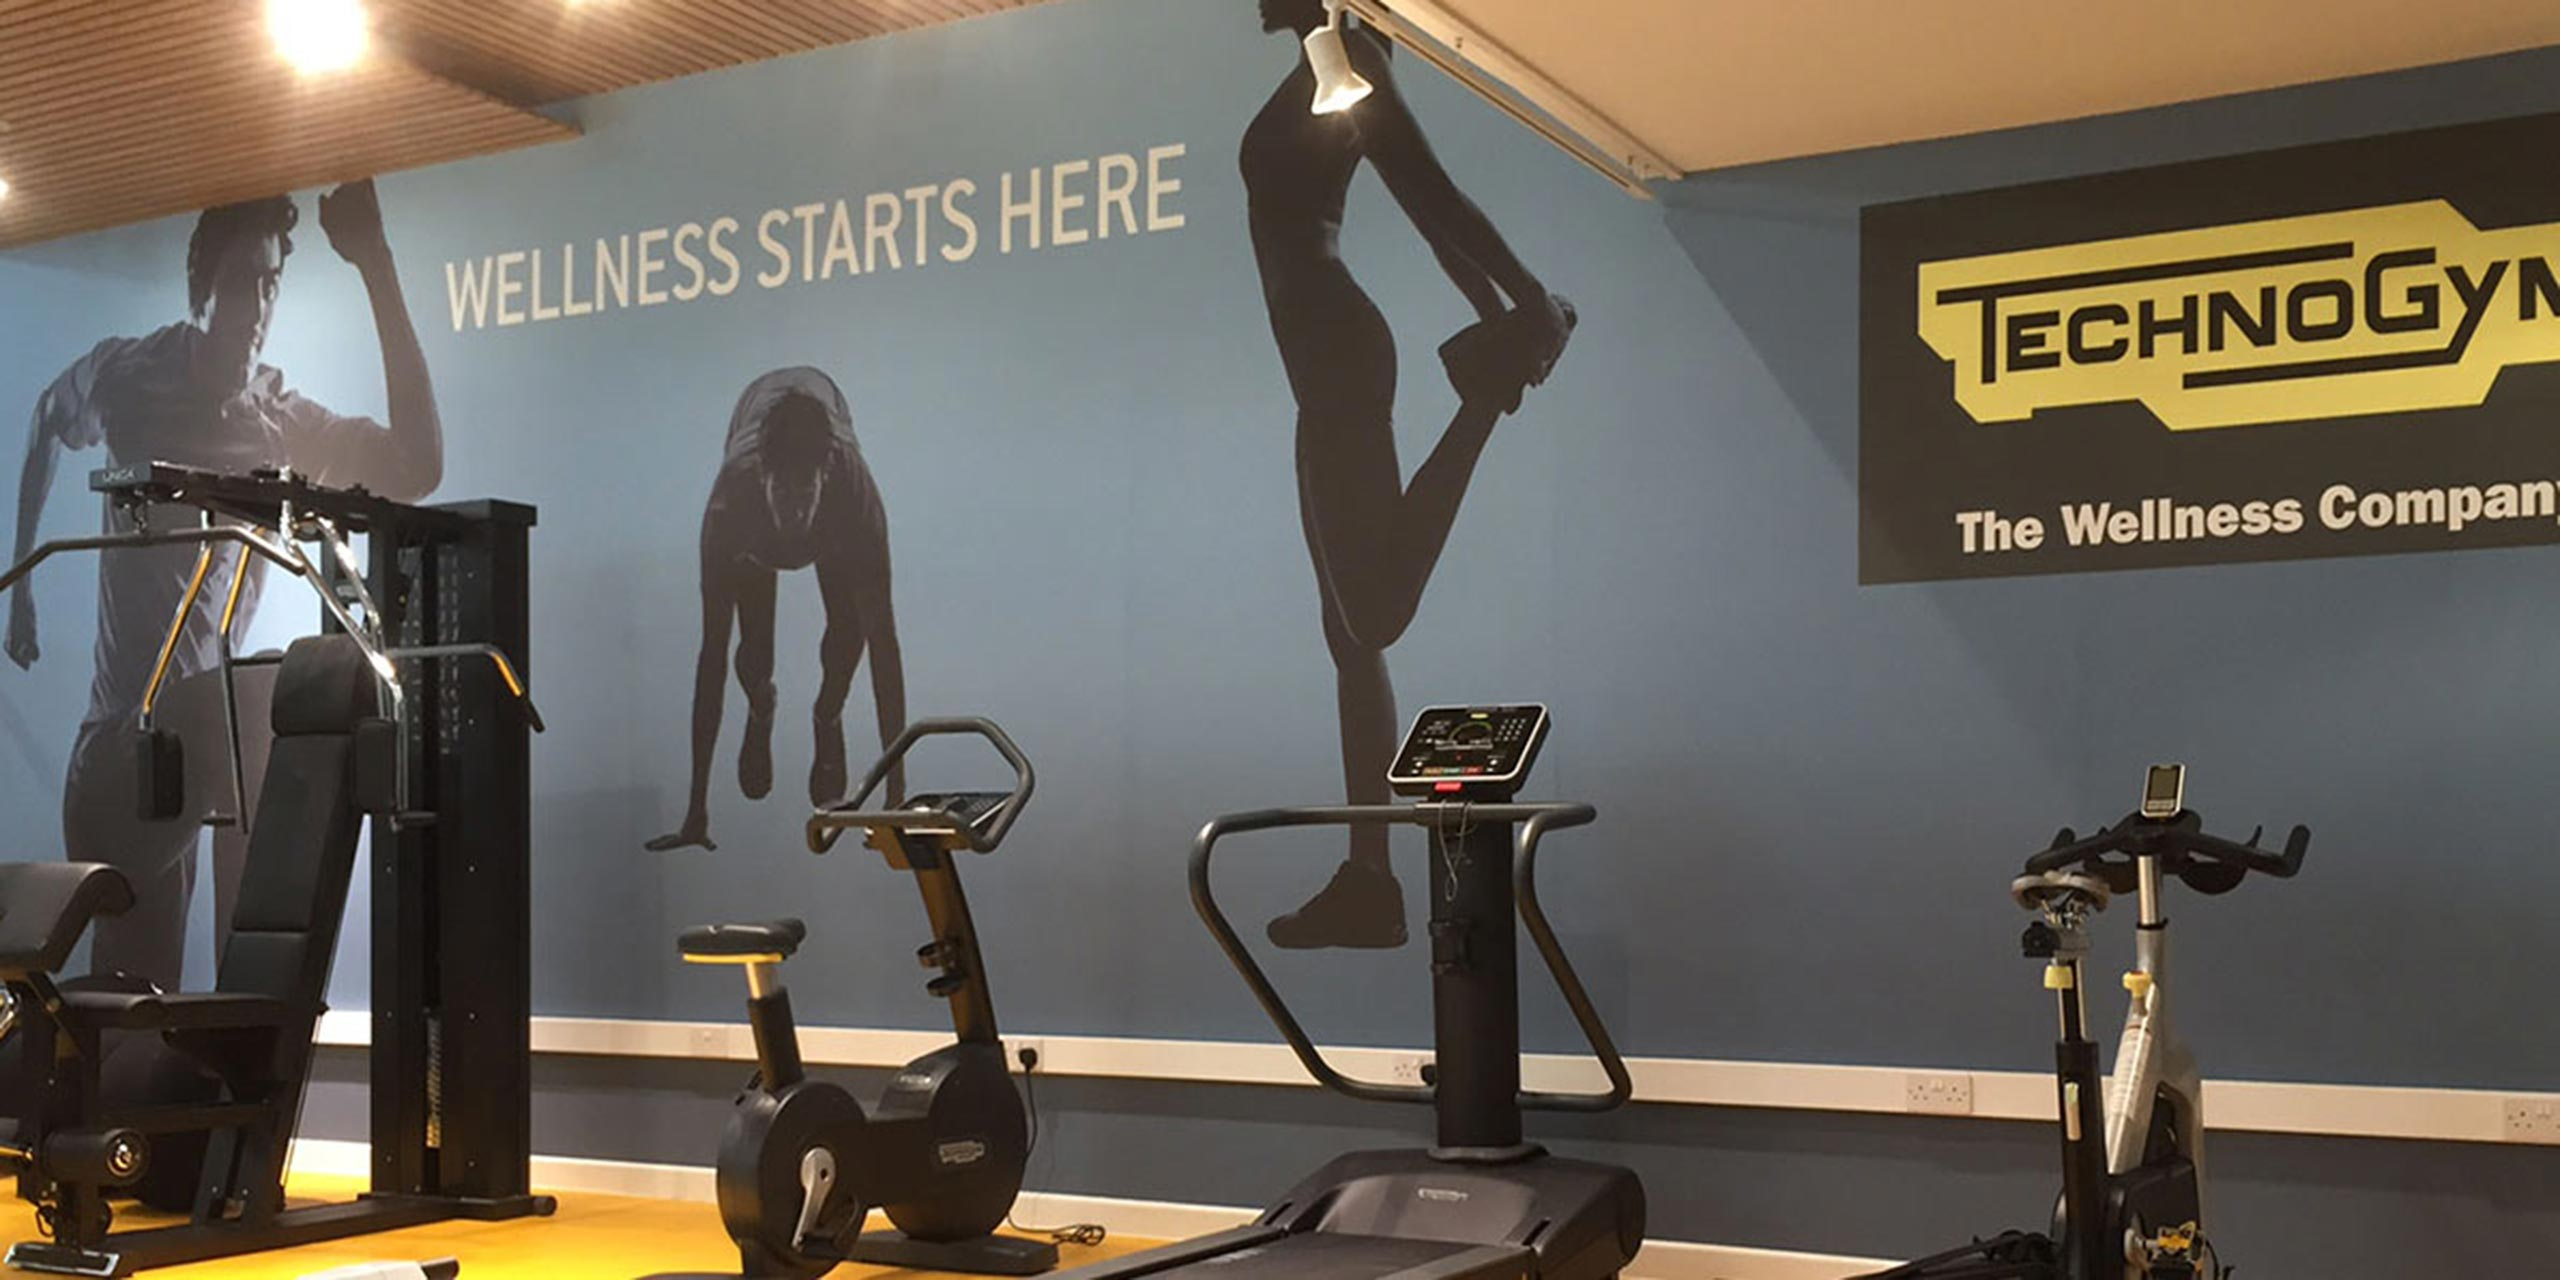 High impact update for Technogym in the UK